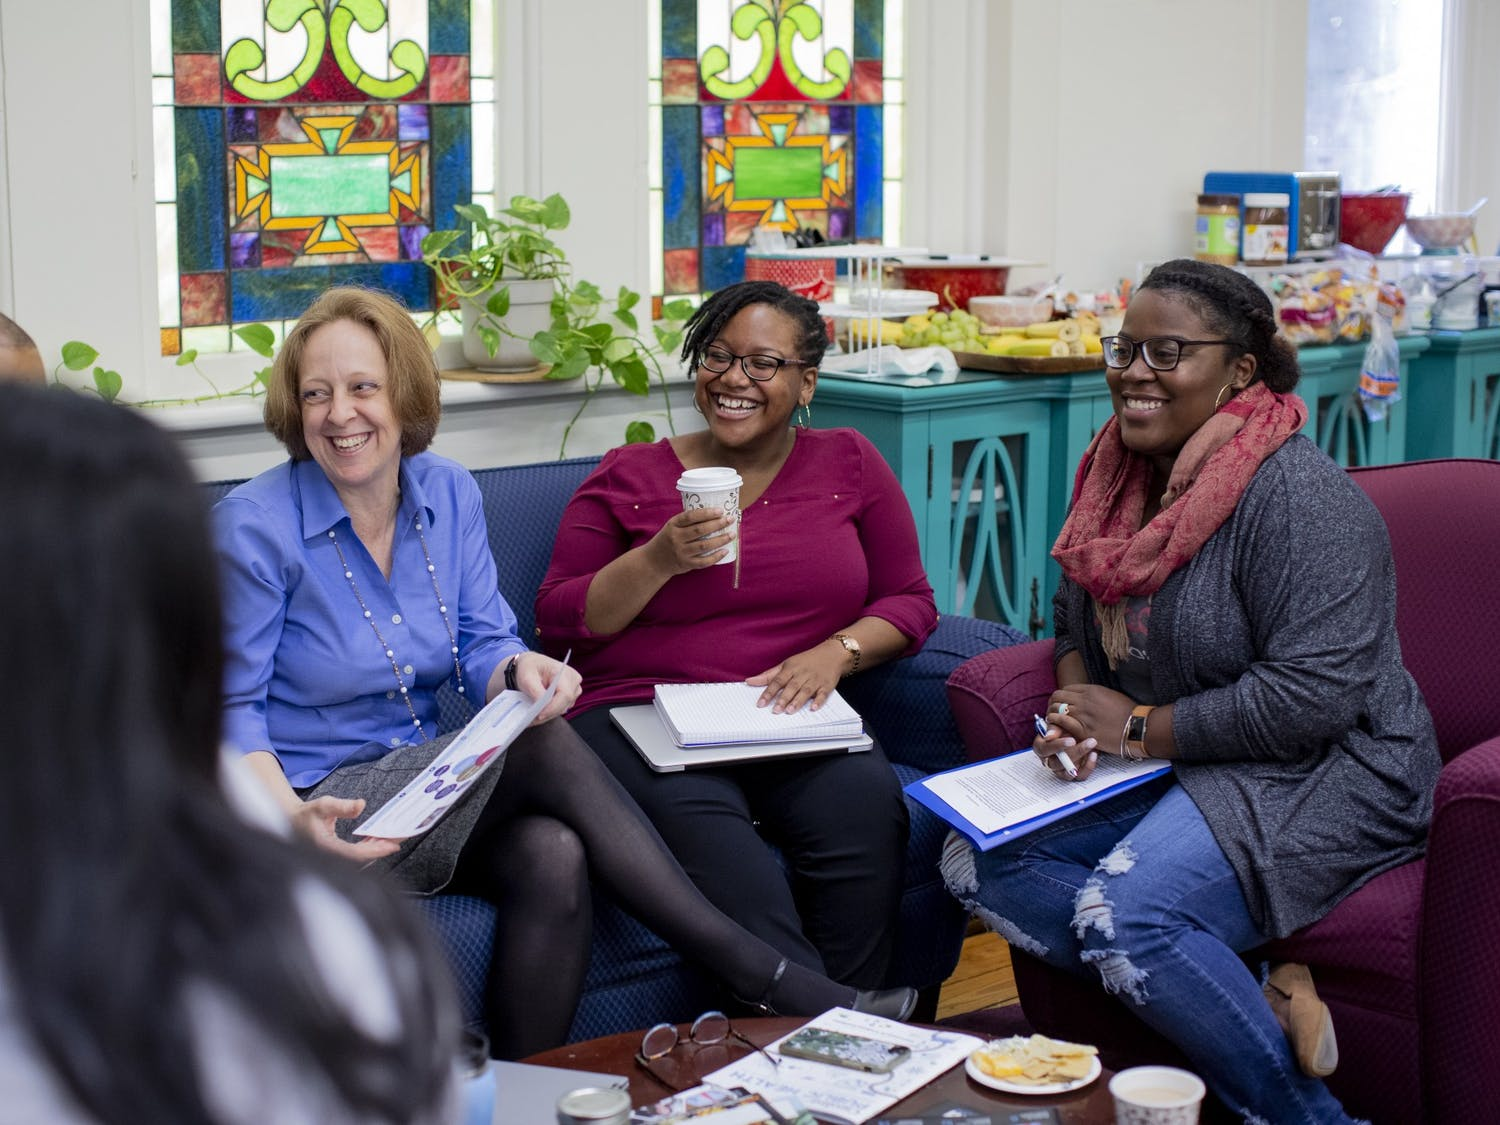 Maria Dykema Erb and Kathy Wood of the UNC Graduate School's Diversity and Student Success department host a Writing Wednesday work session on November 7, 2018 in Chapel Hill, NC. Photo courtesy of Jeyhoun Allebaugh/UNC-Chapel Hill